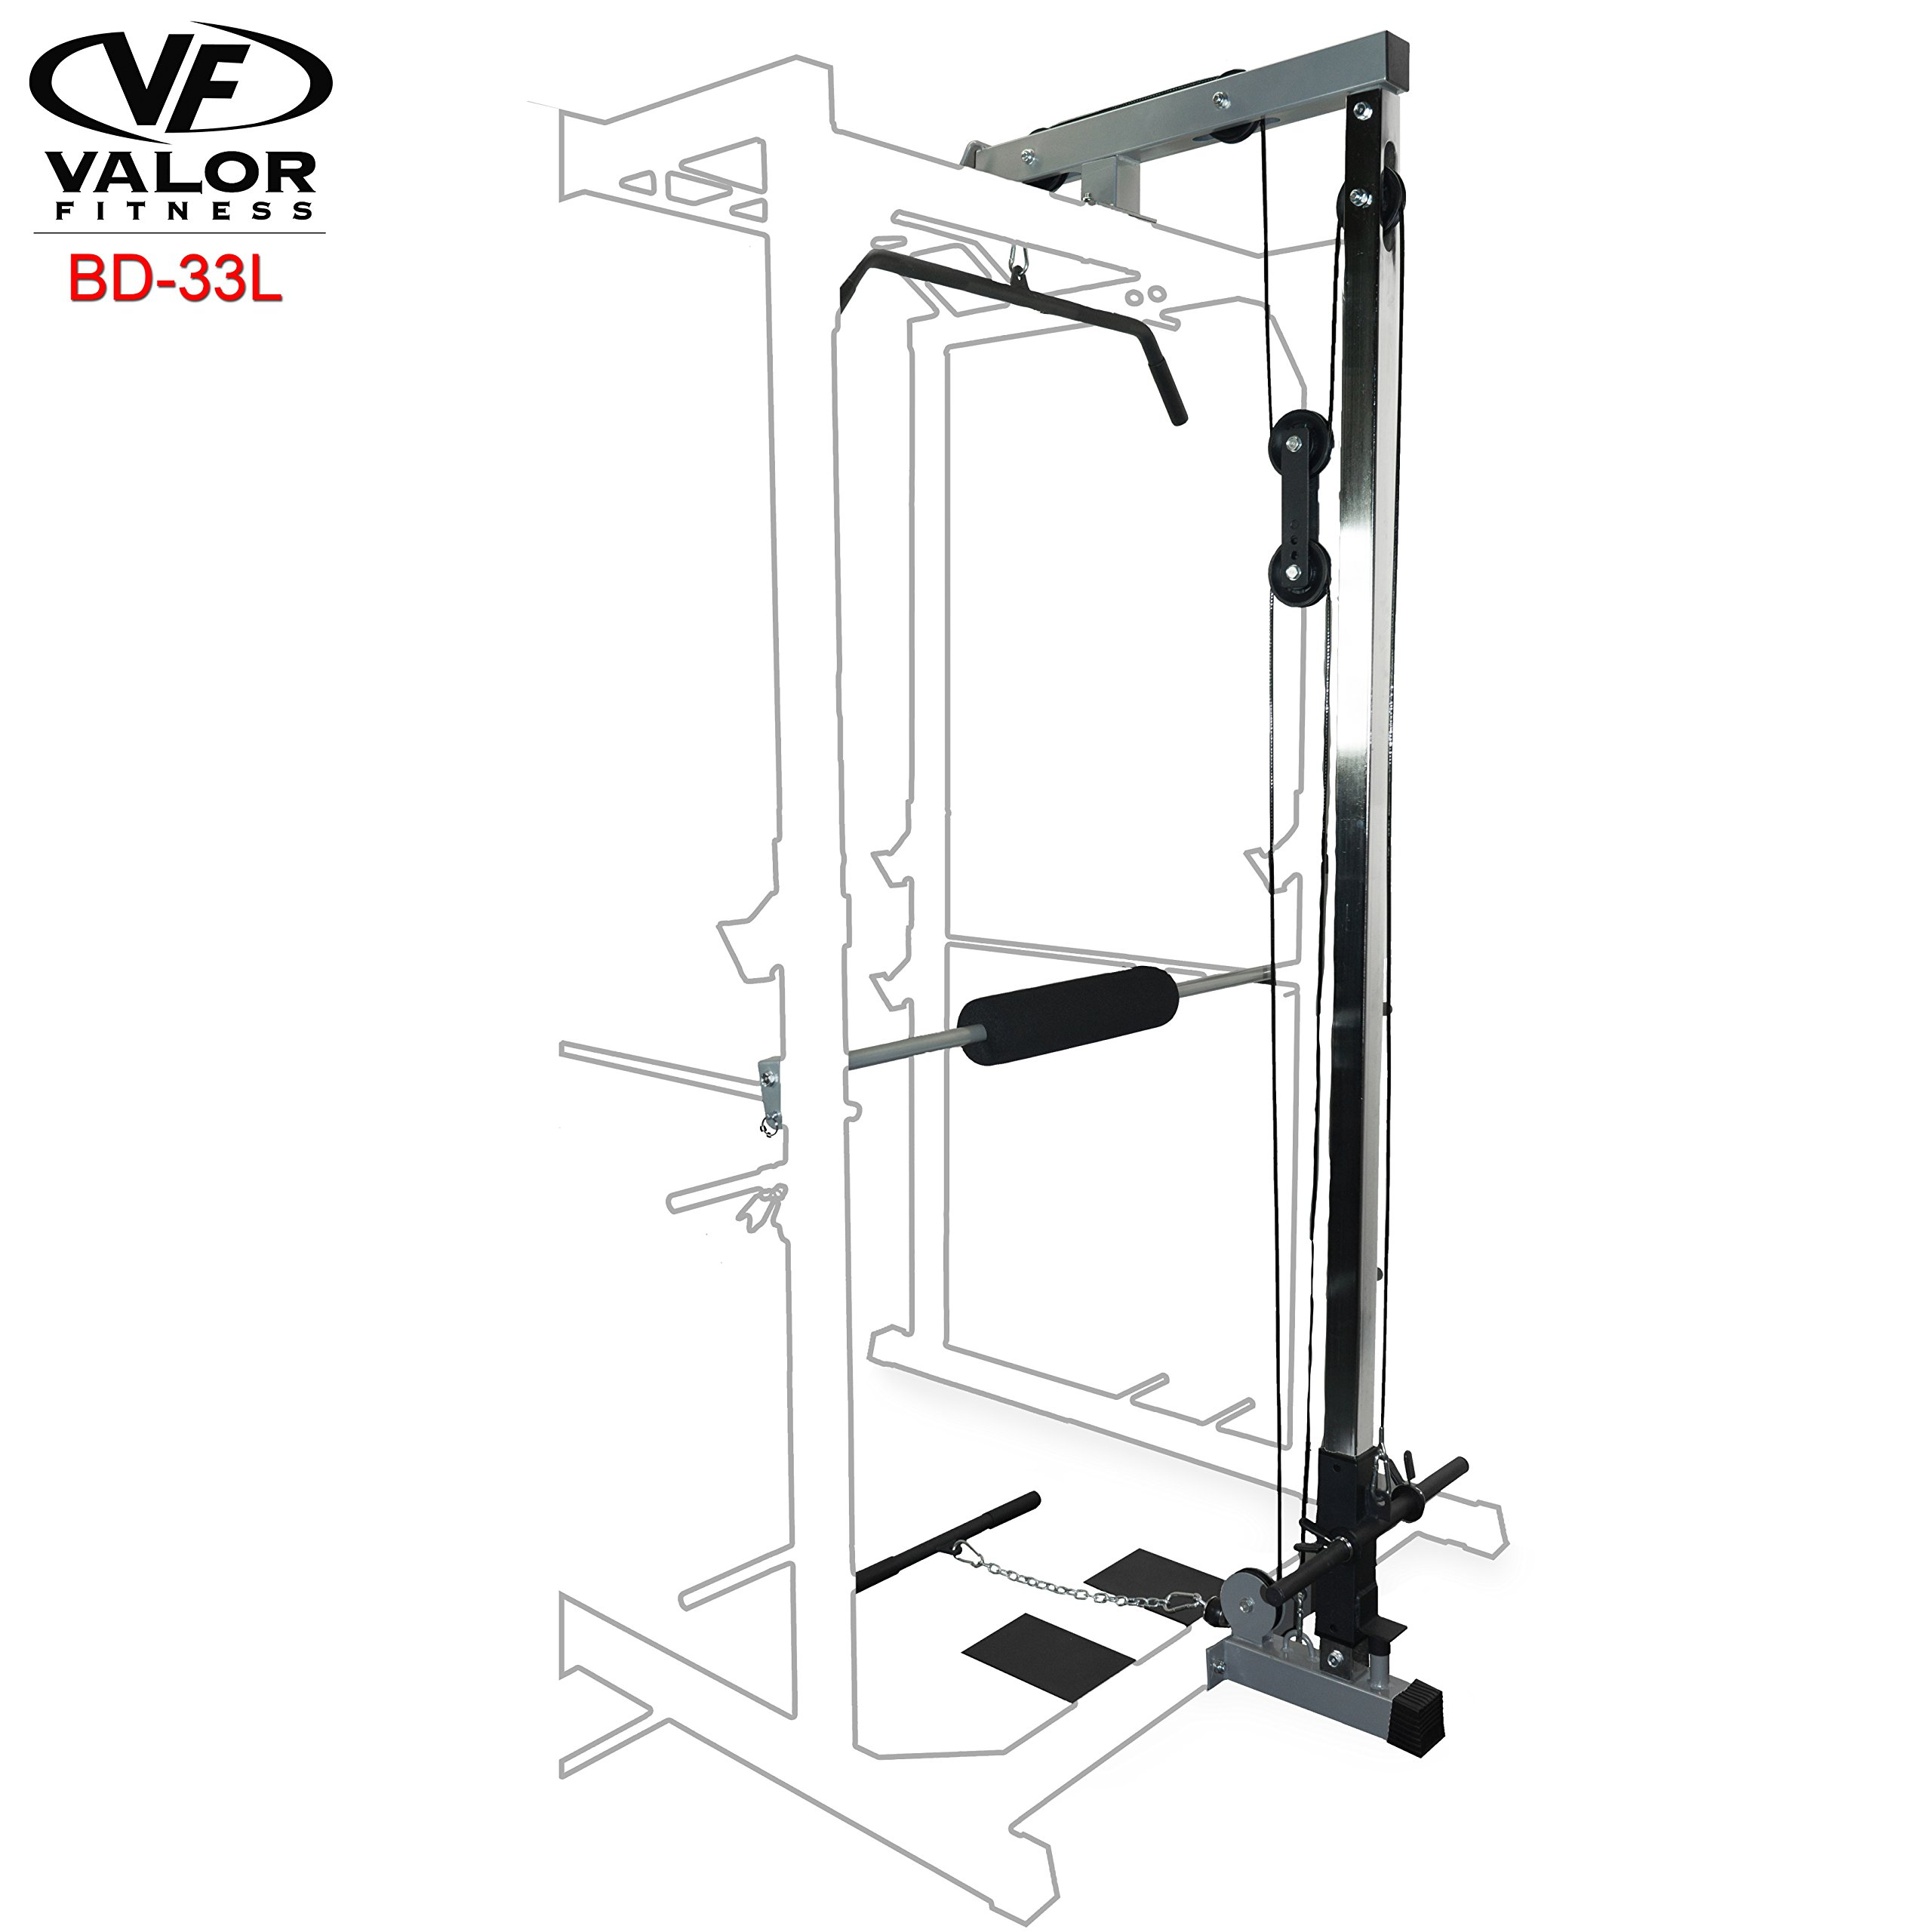 Valor Fitness Lat Pull for BD-33 Heavy Duty Power Cage